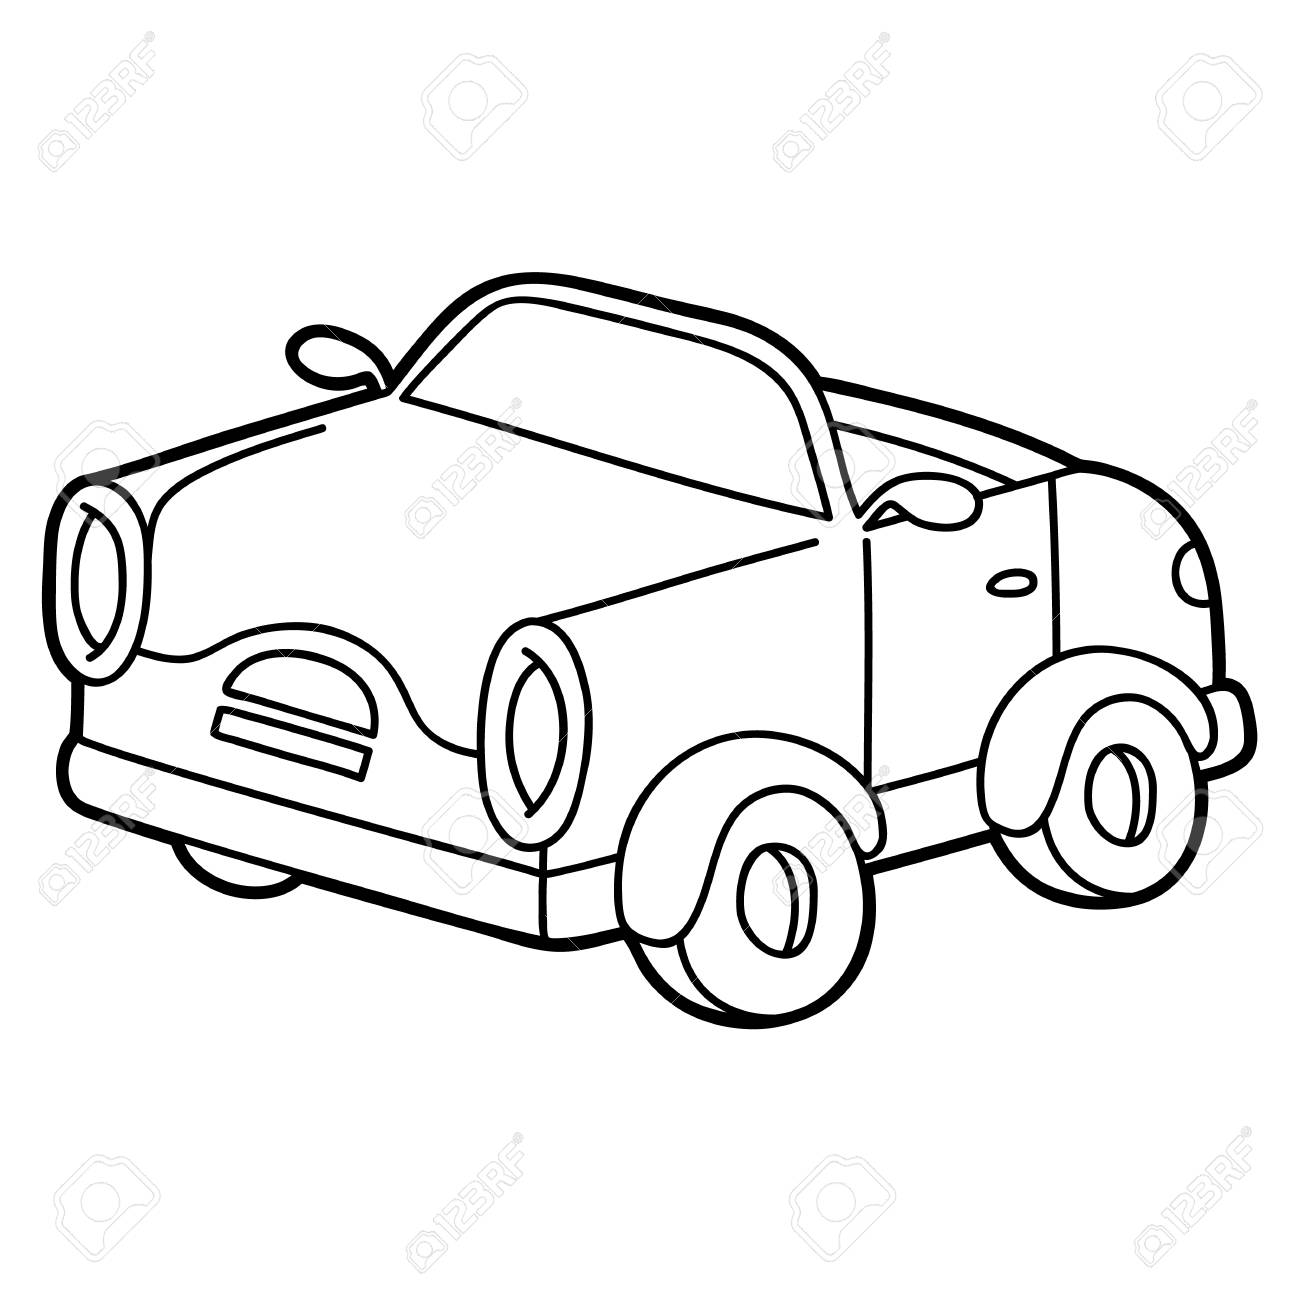 1300x1300 Retro Car For Children, Coloring Page. Royalty Free Klipartlar